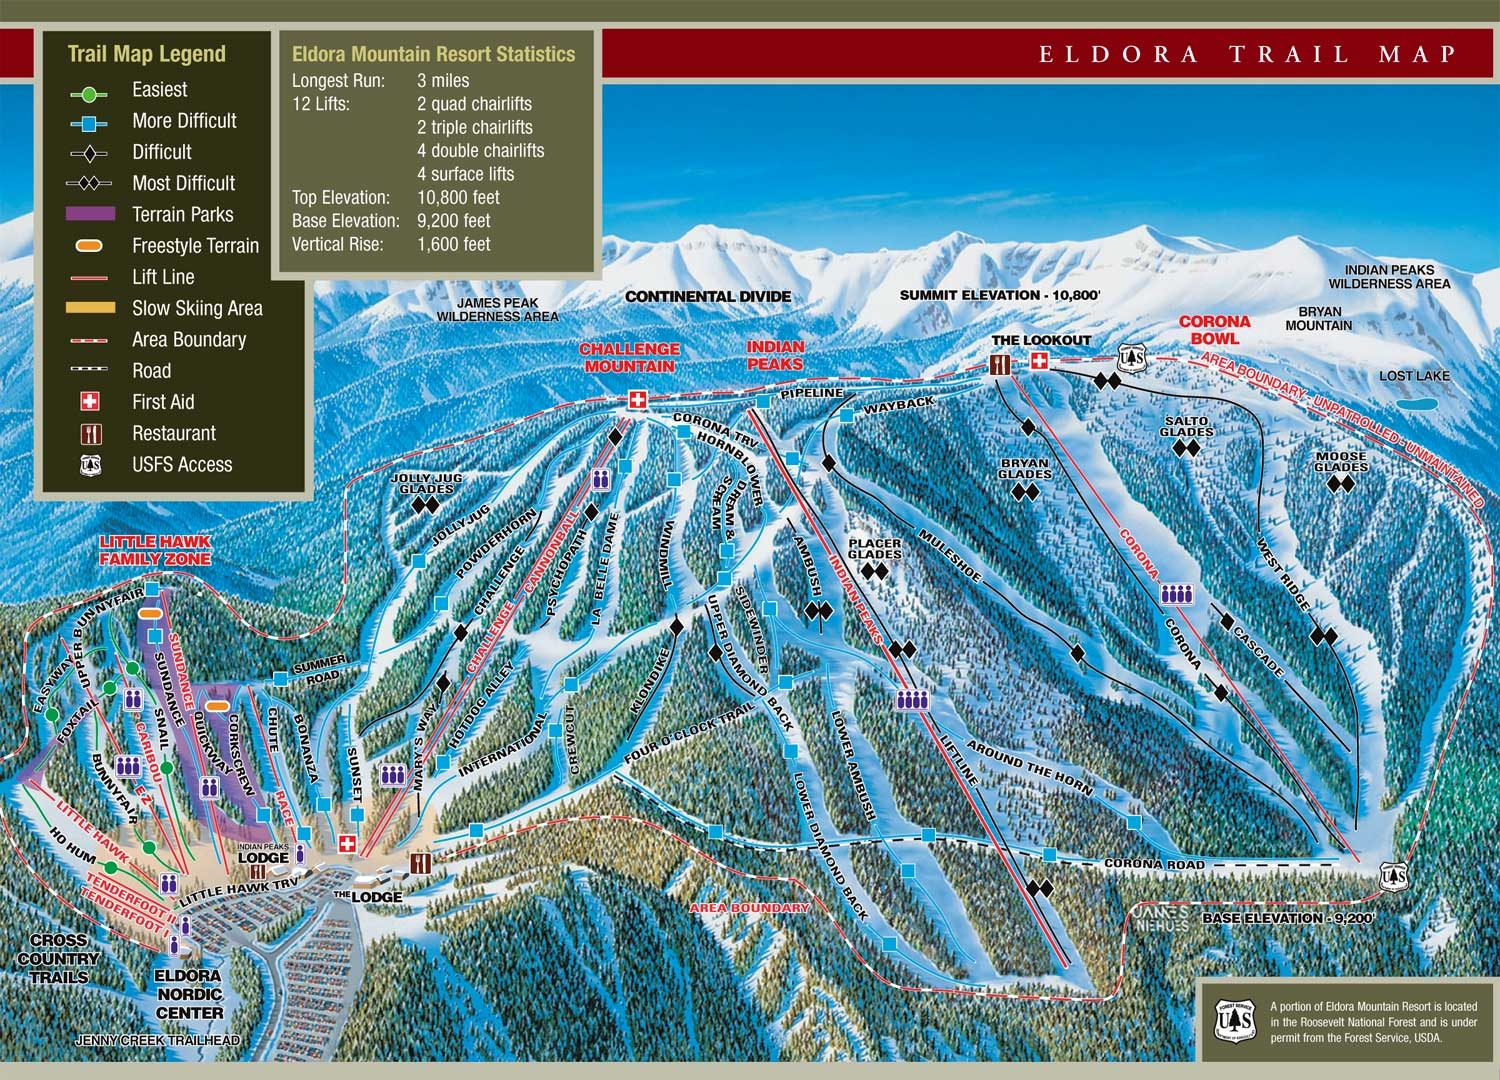 Eldora Mountain Trail Map